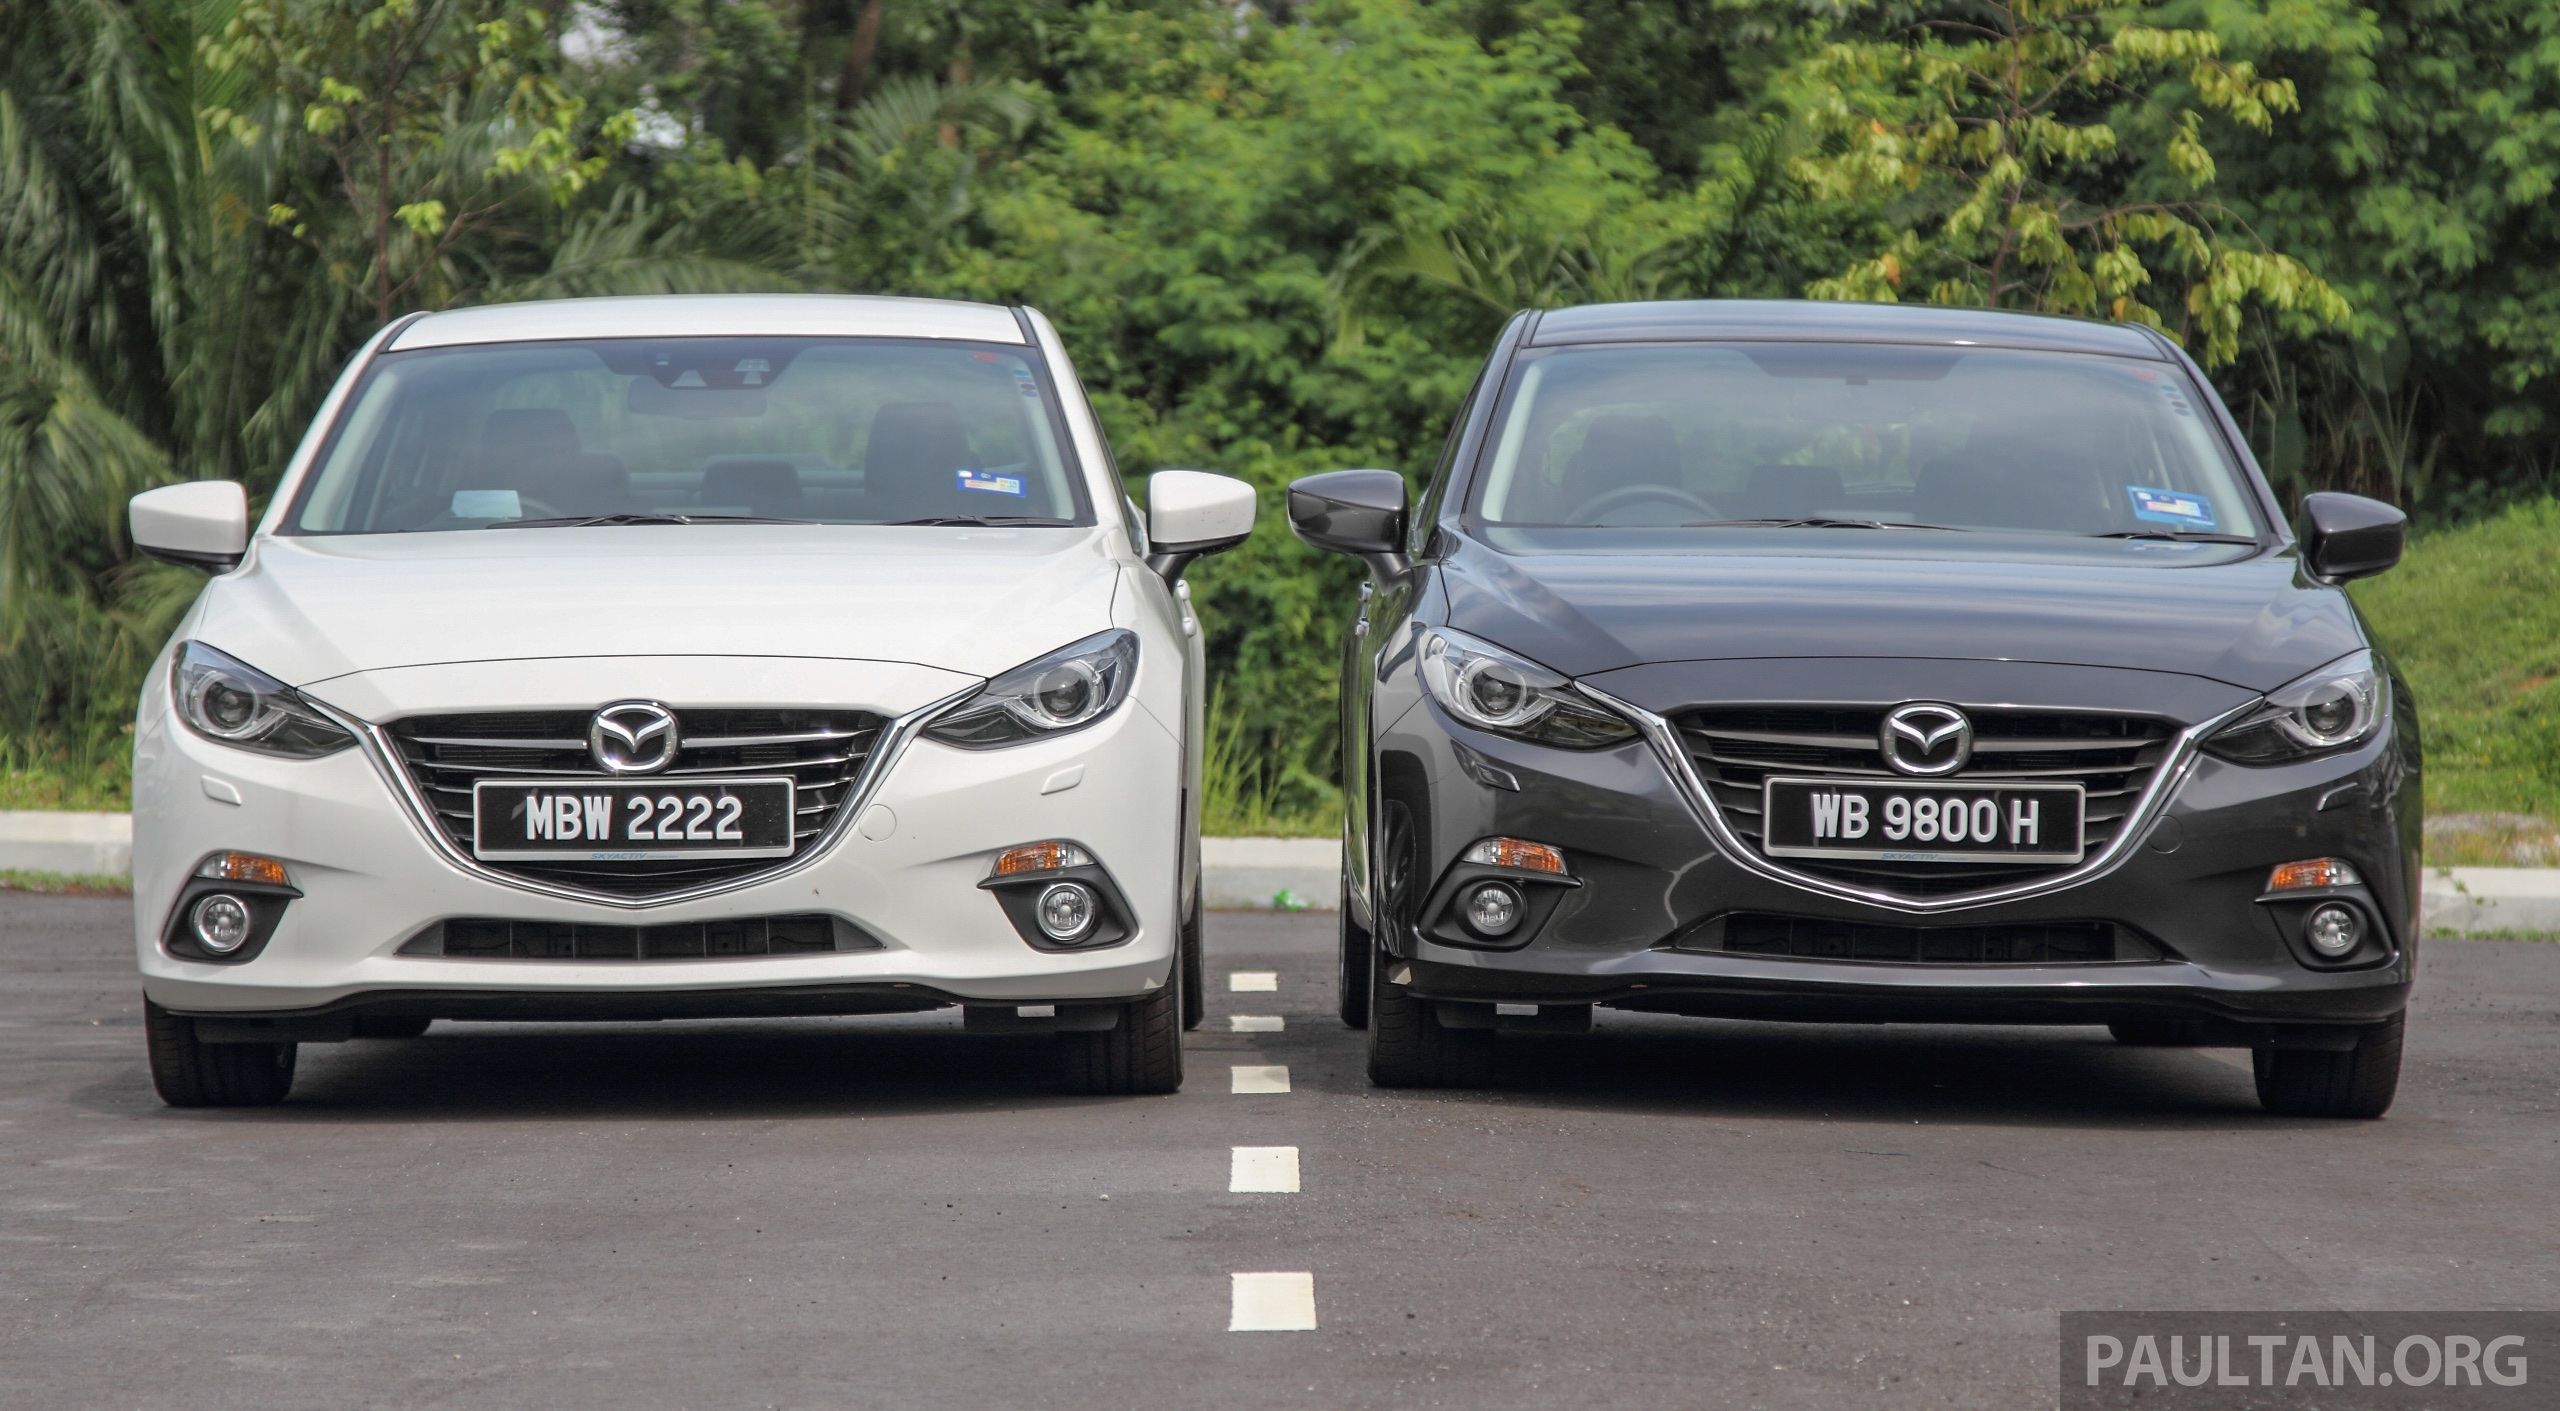 gallery 2015 mazda 3 ckd sedan vs hatchback image 337668. Black Bedroom Furniture Sets. Home Design Ideas